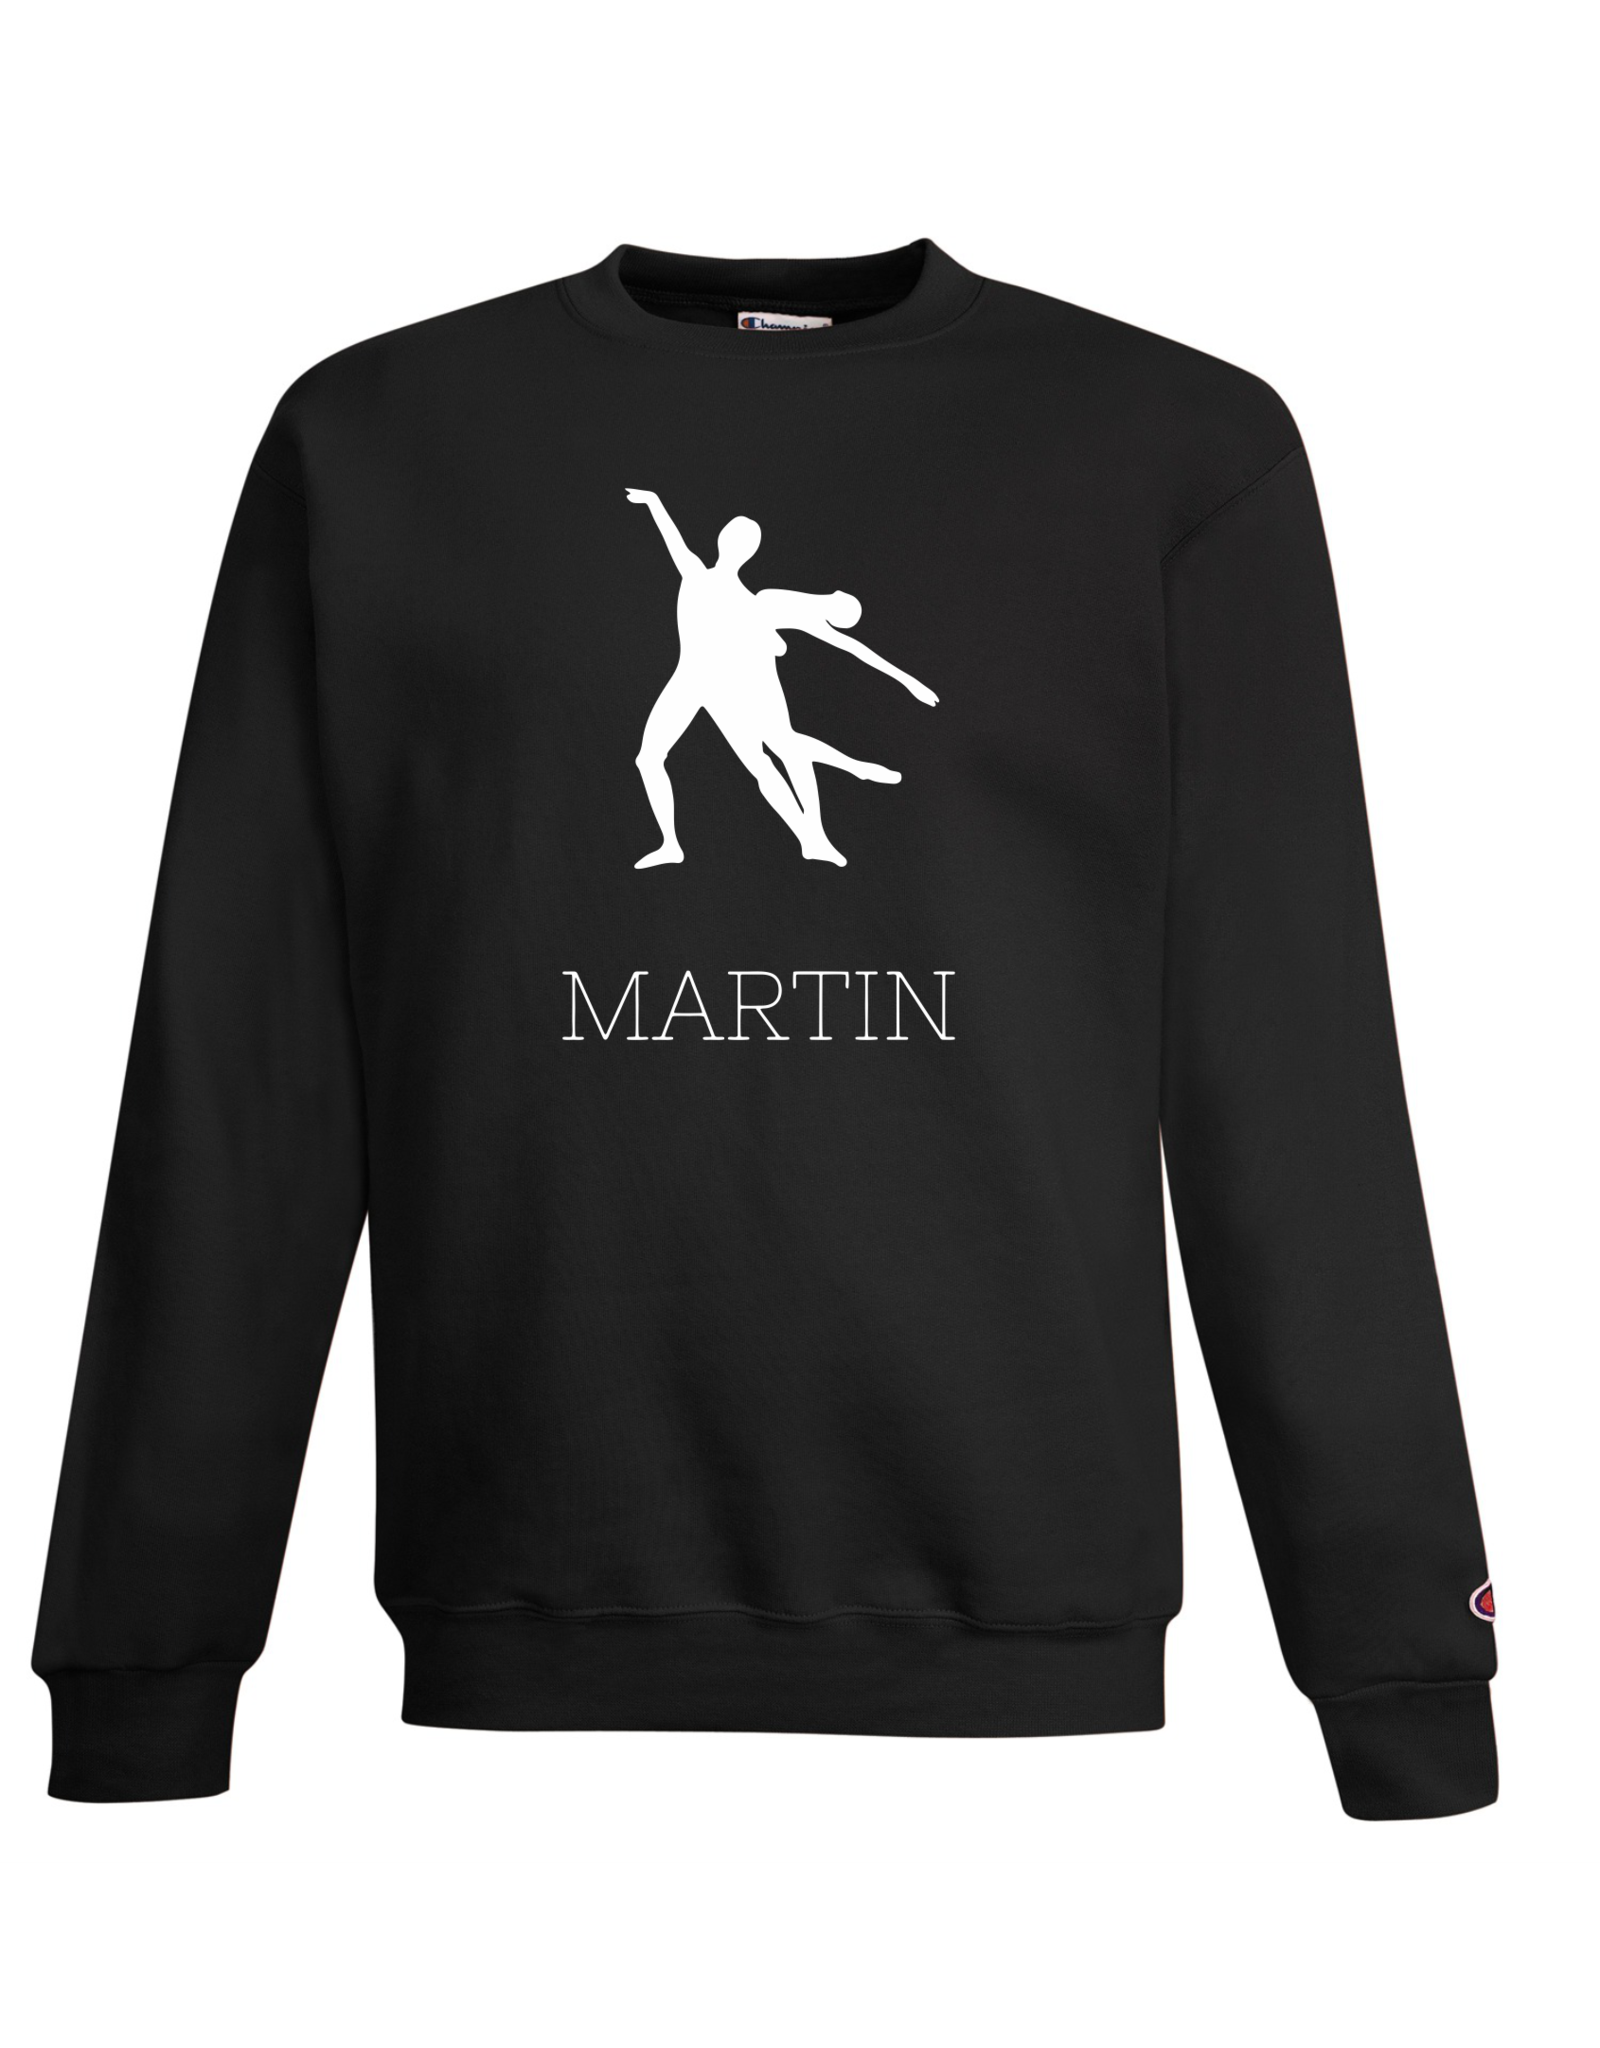 Champion Martin Crew neck sweater - Adult